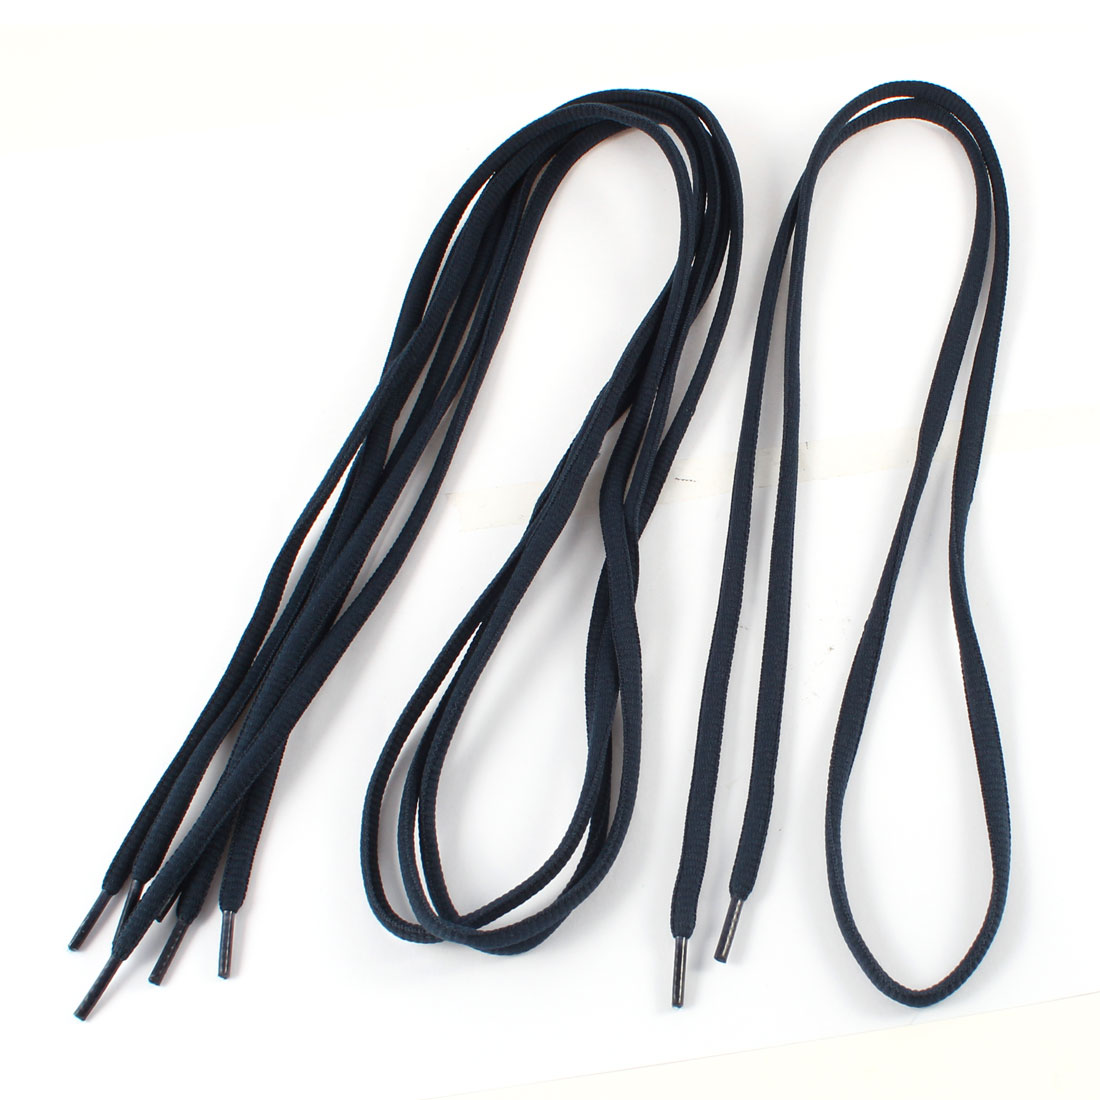 "2 Pairs Dark Blue Flat Shoelaces Shoestring 45"" for Sports Shoes"